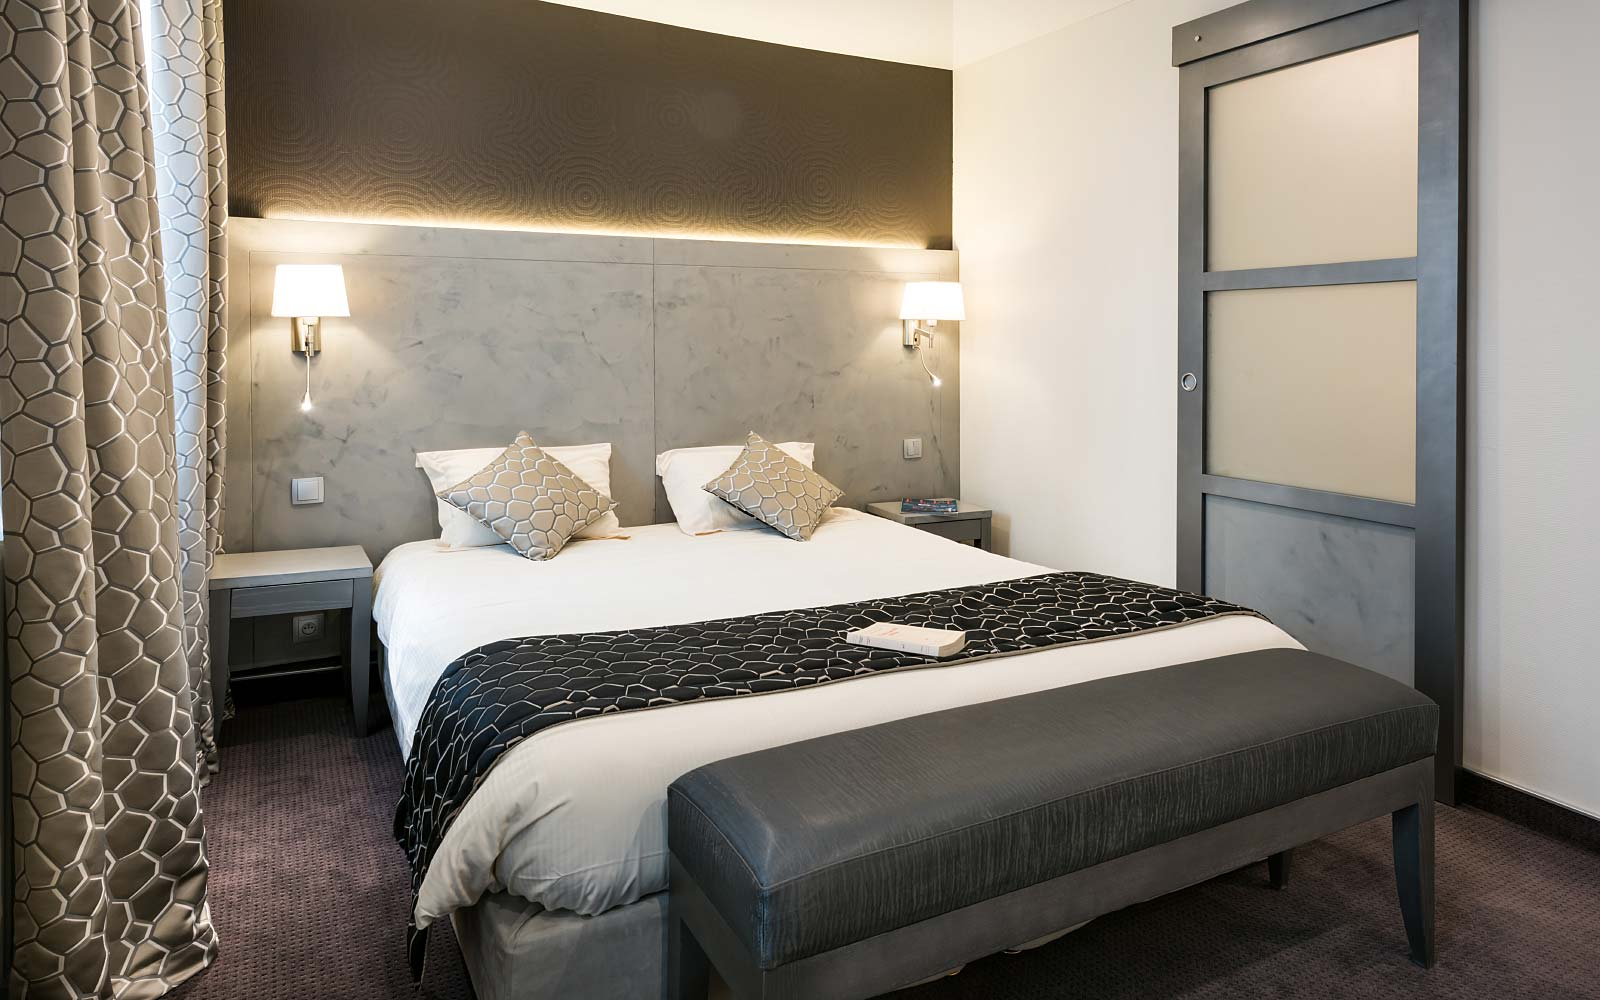 H tel vivienne op ra paris site officiel hotel for Hotel paris chambre 5 personnes